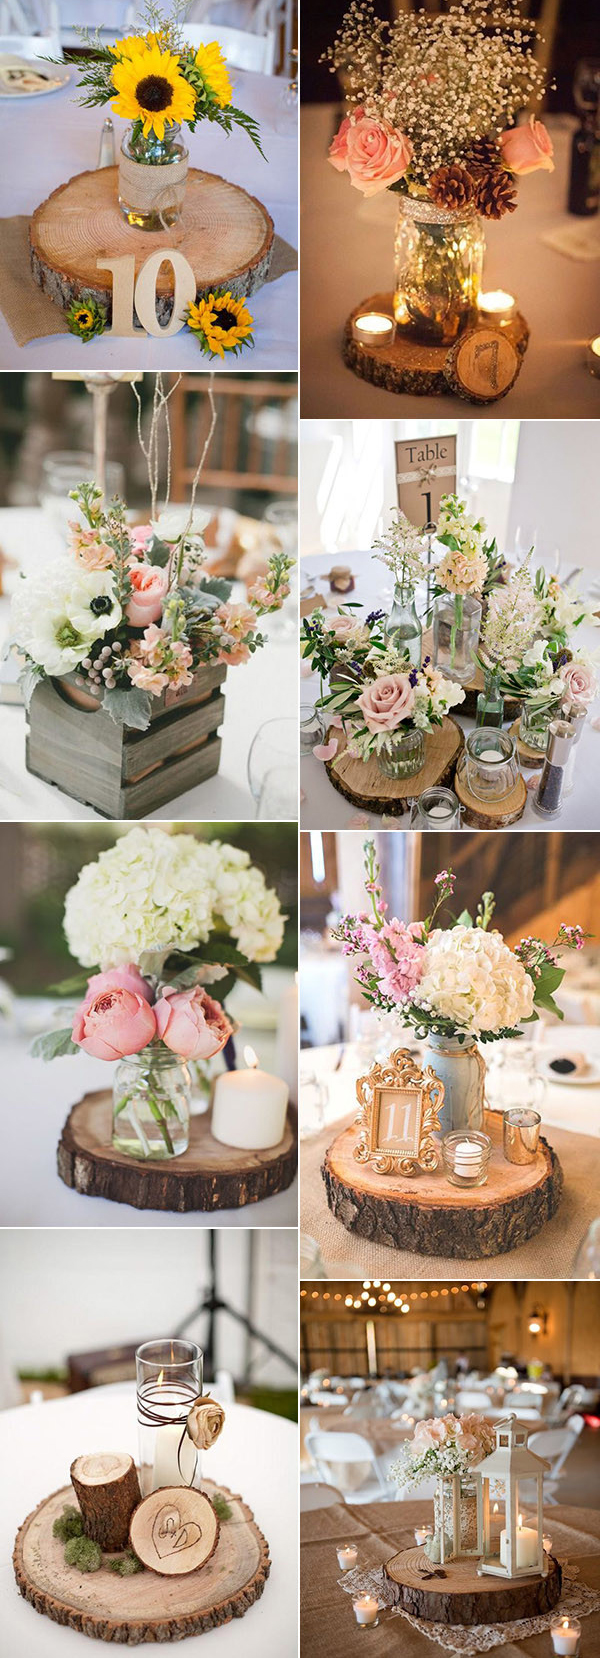 Awesome Rustic Wedding With Wooden Vibe Elements